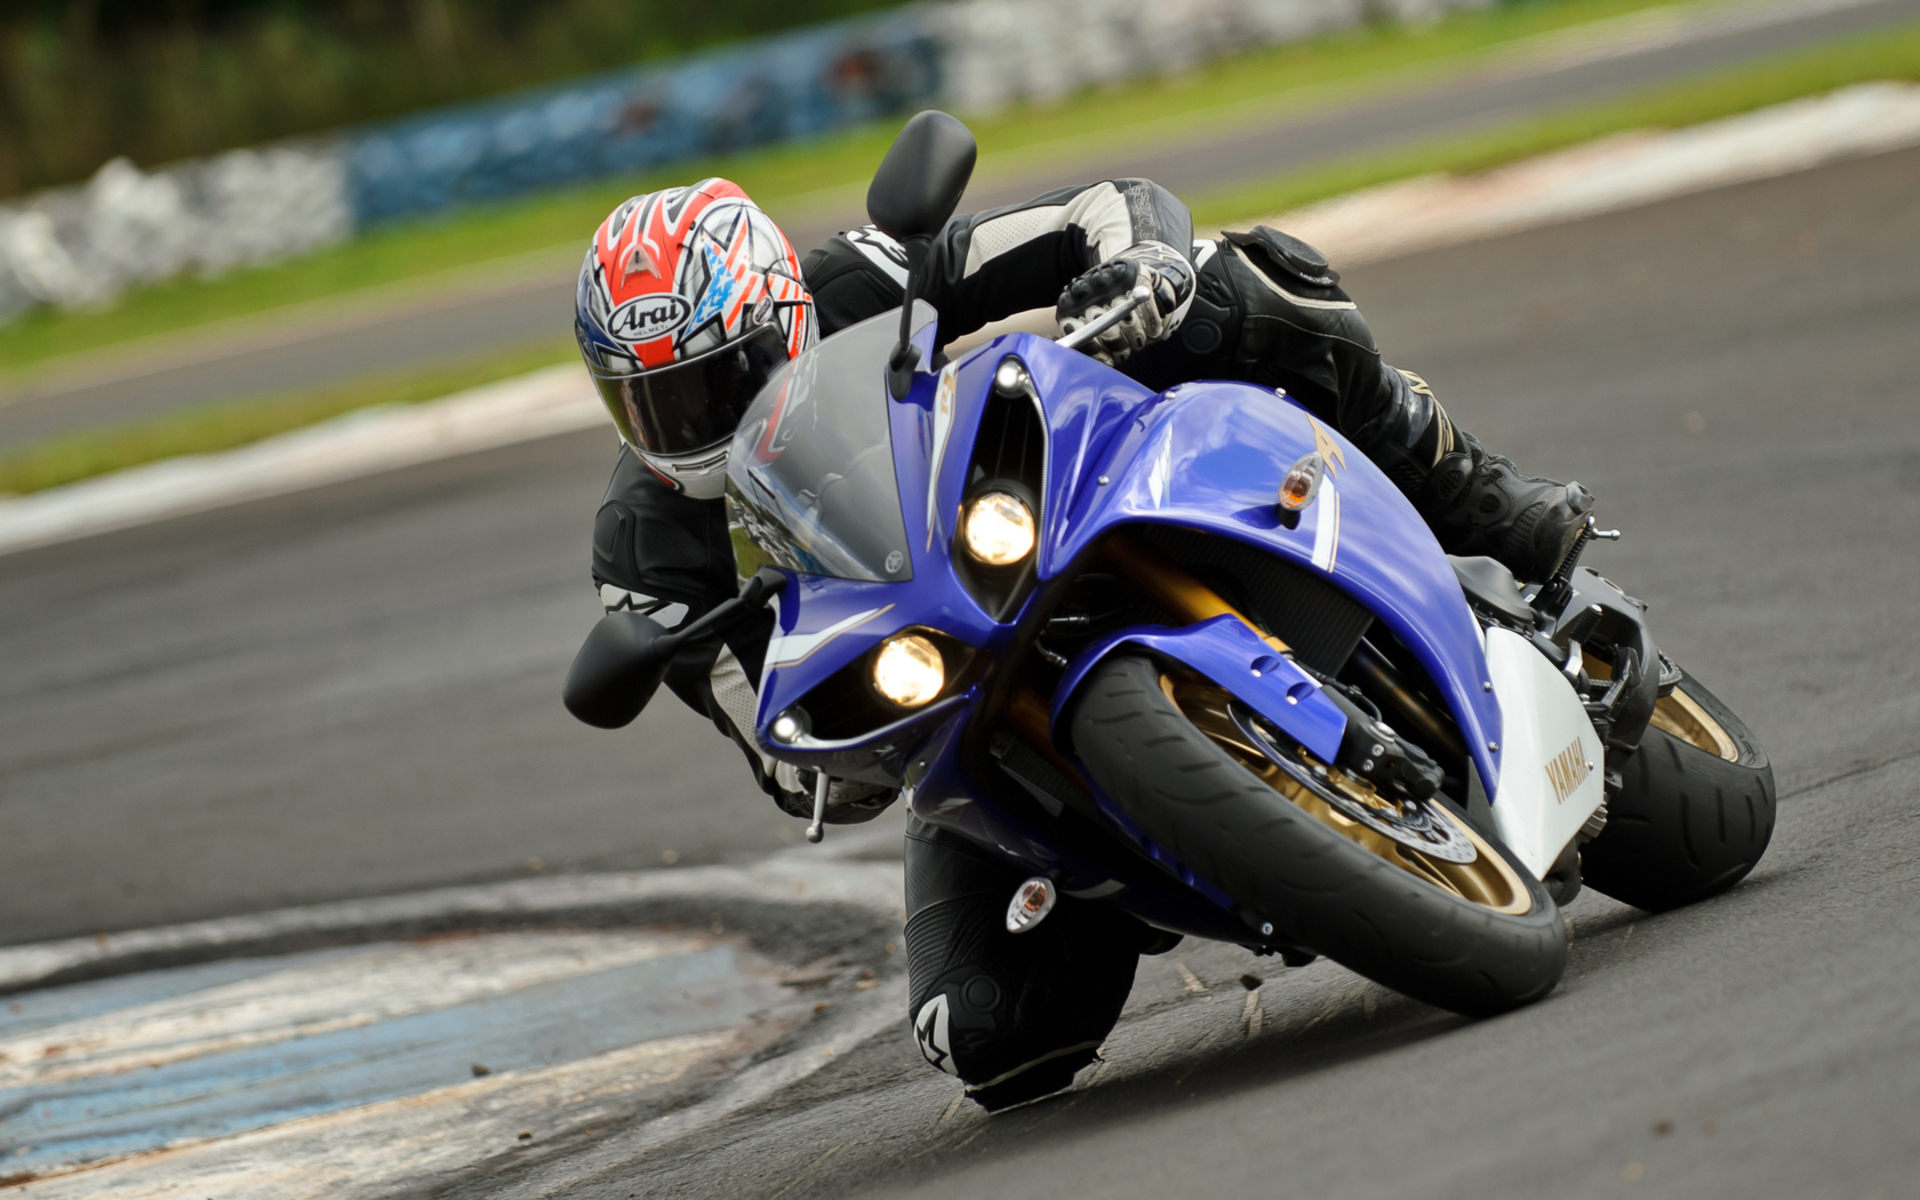 how to watch motorcycle racing online